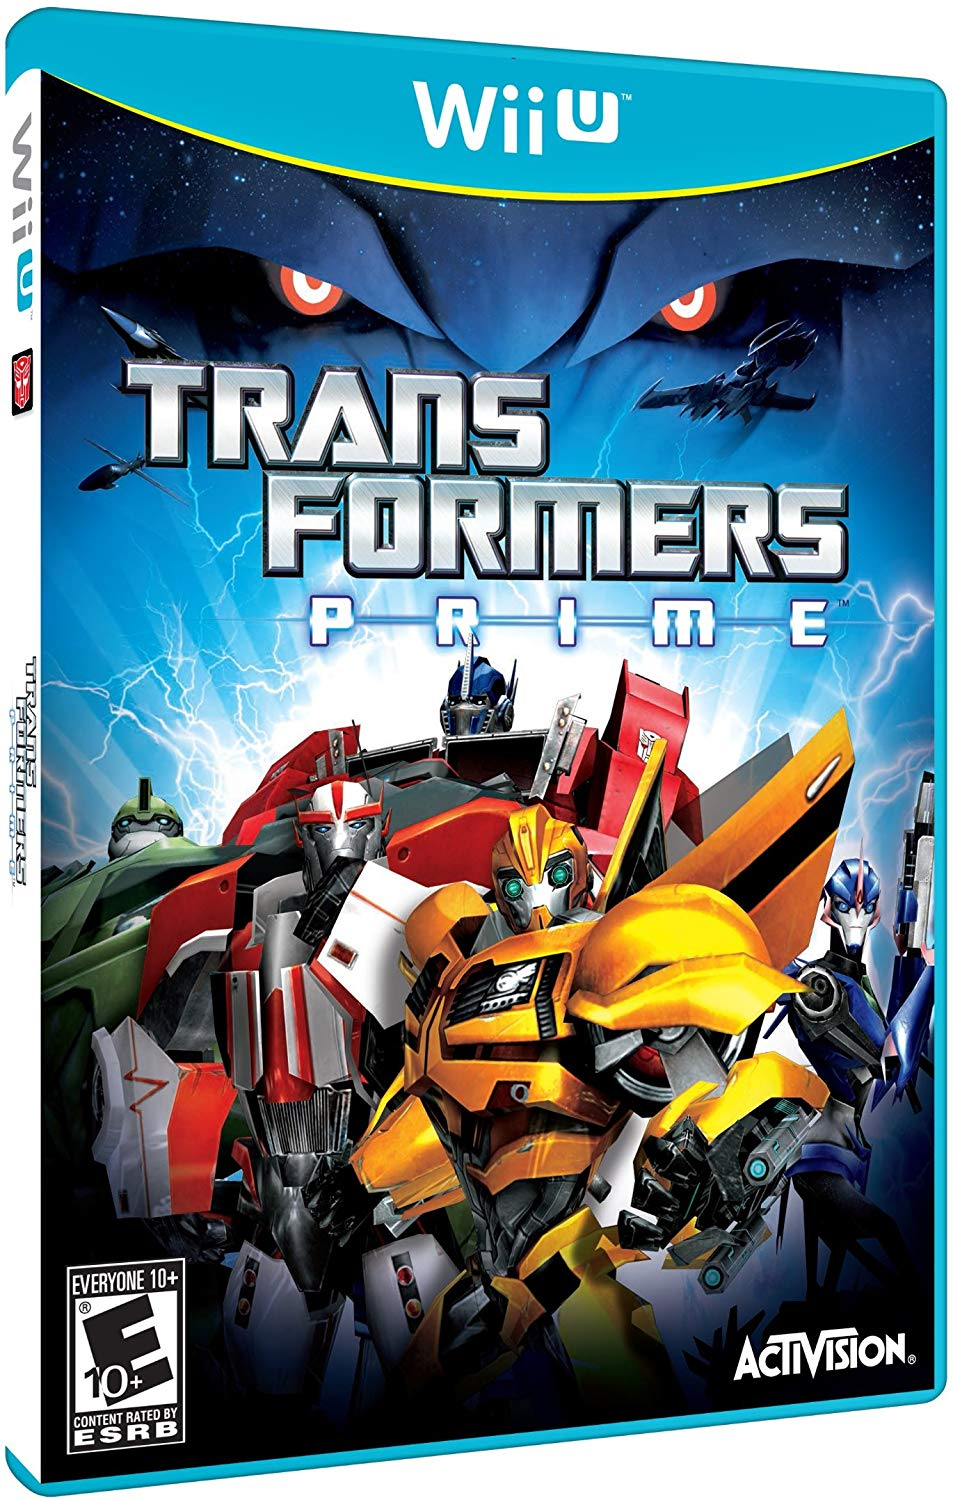 Steve Blum recommends Transformers Prime: The Game for Wii U